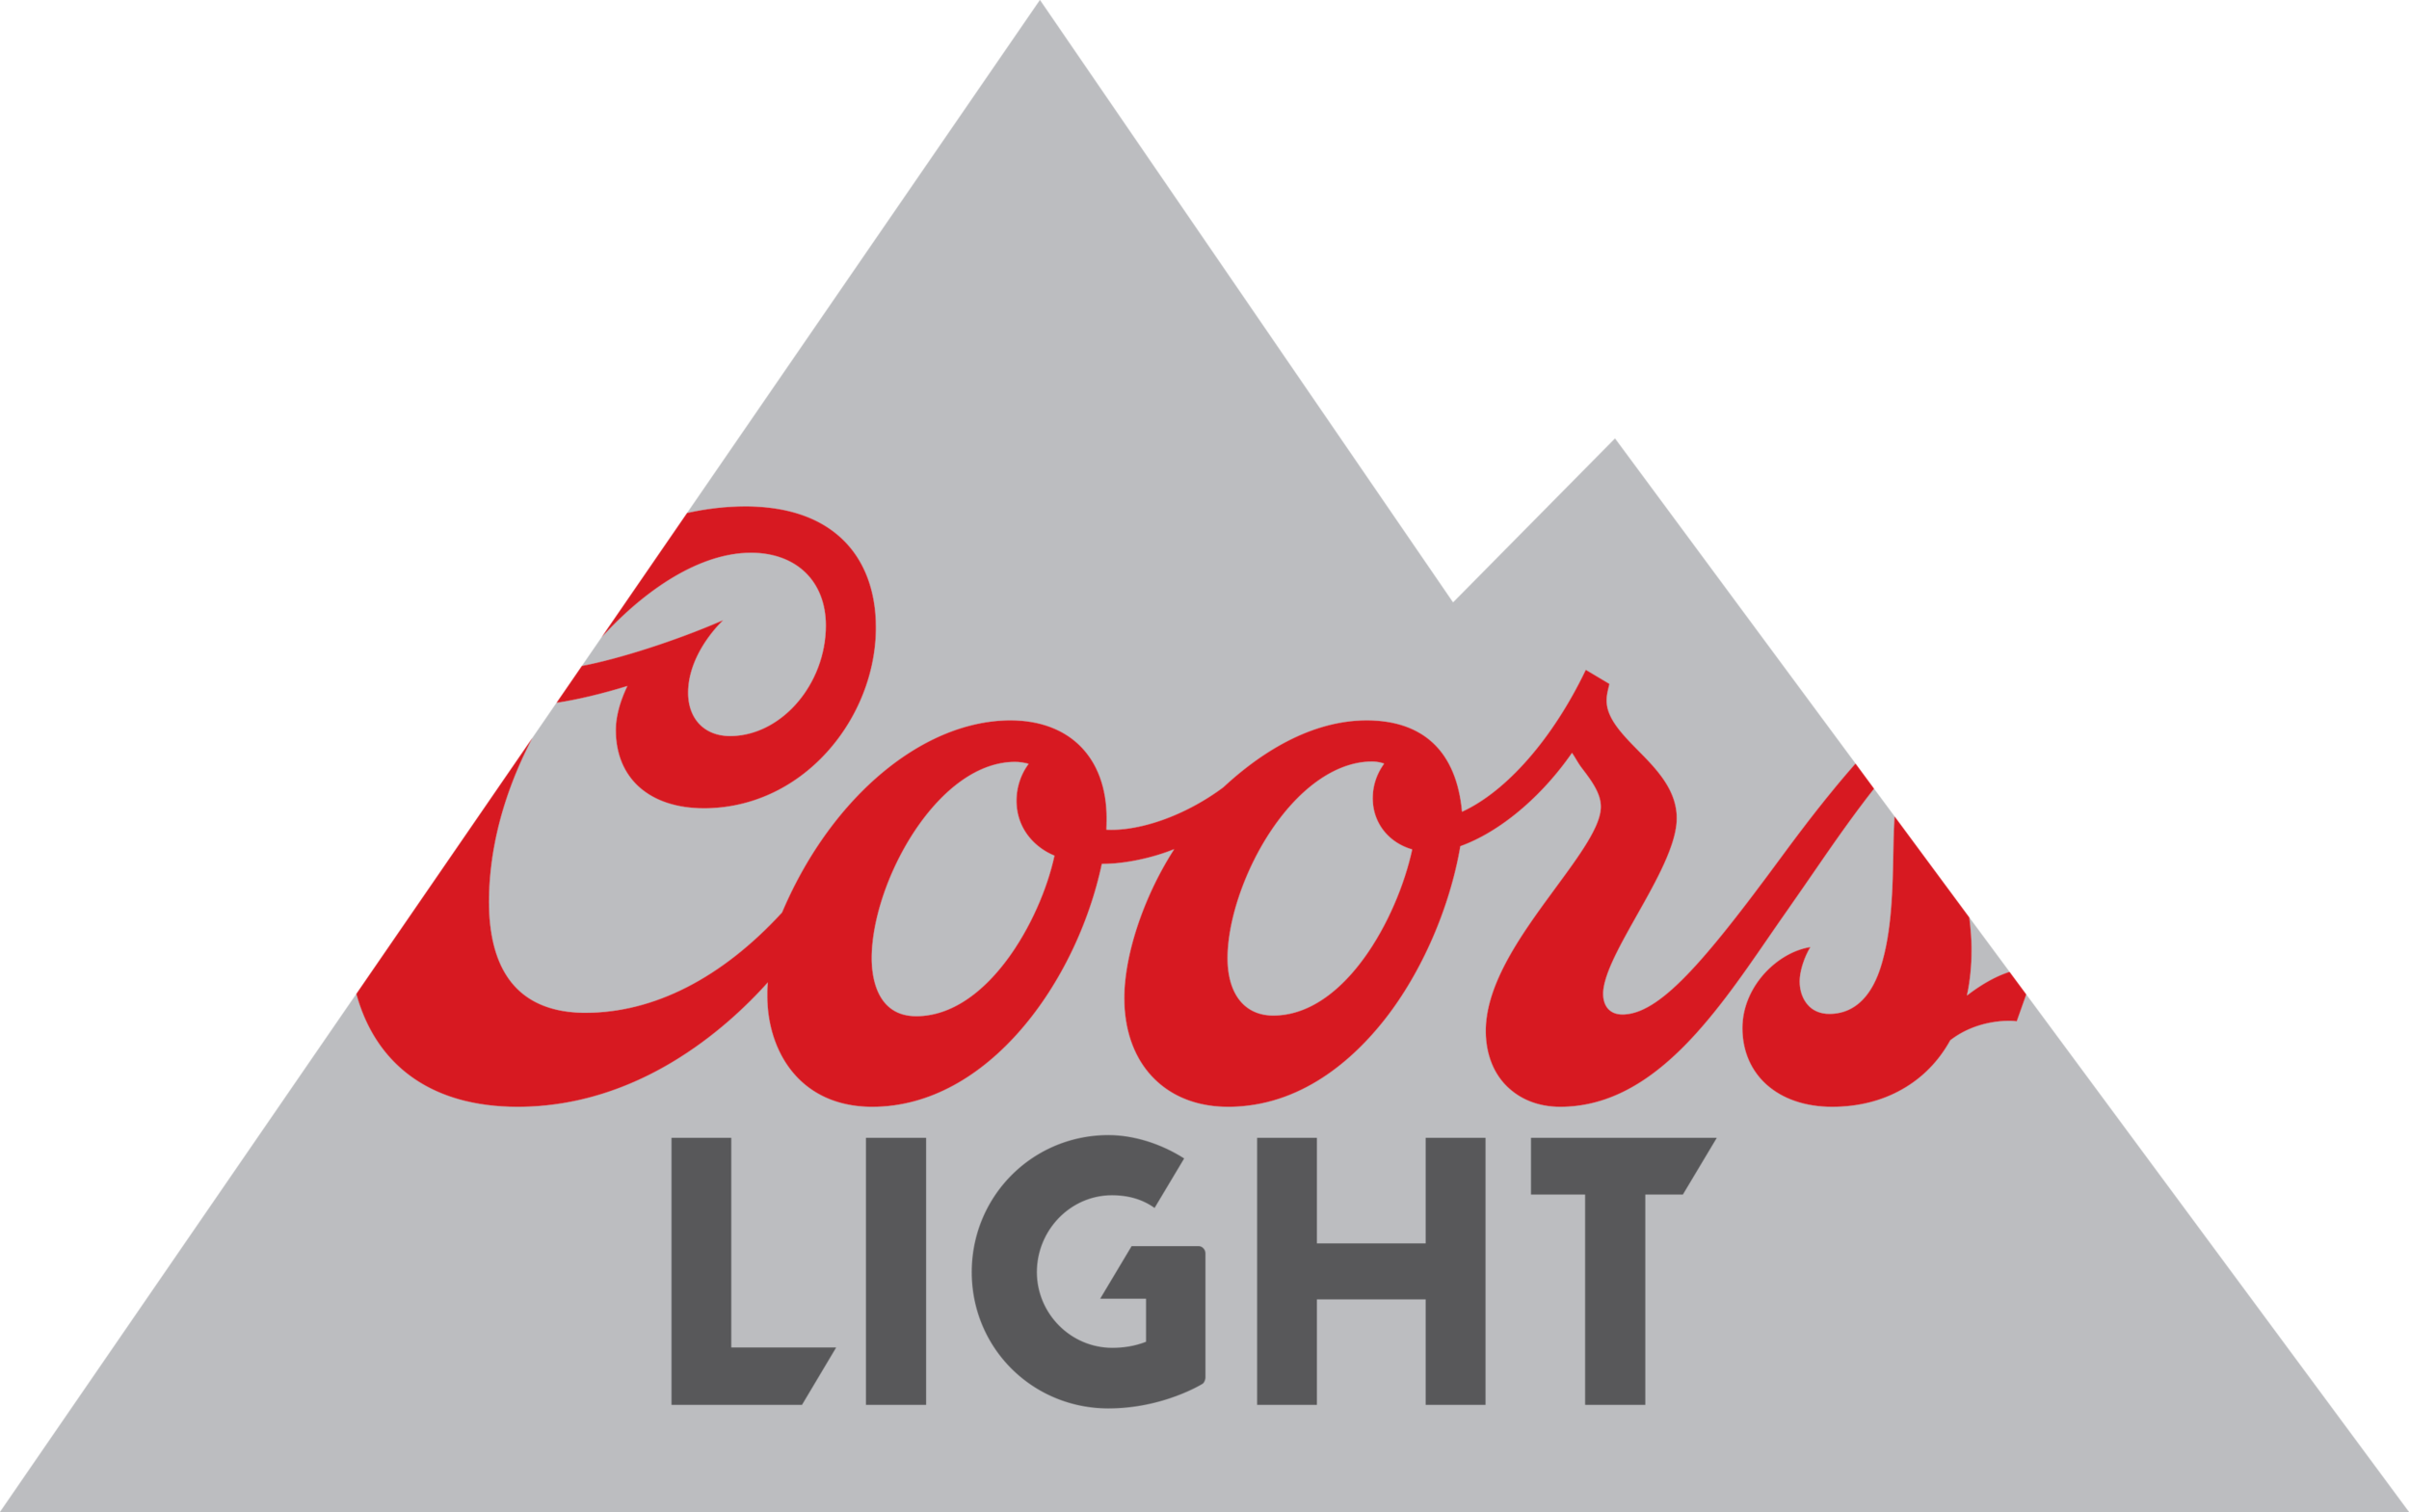 coors-light.png